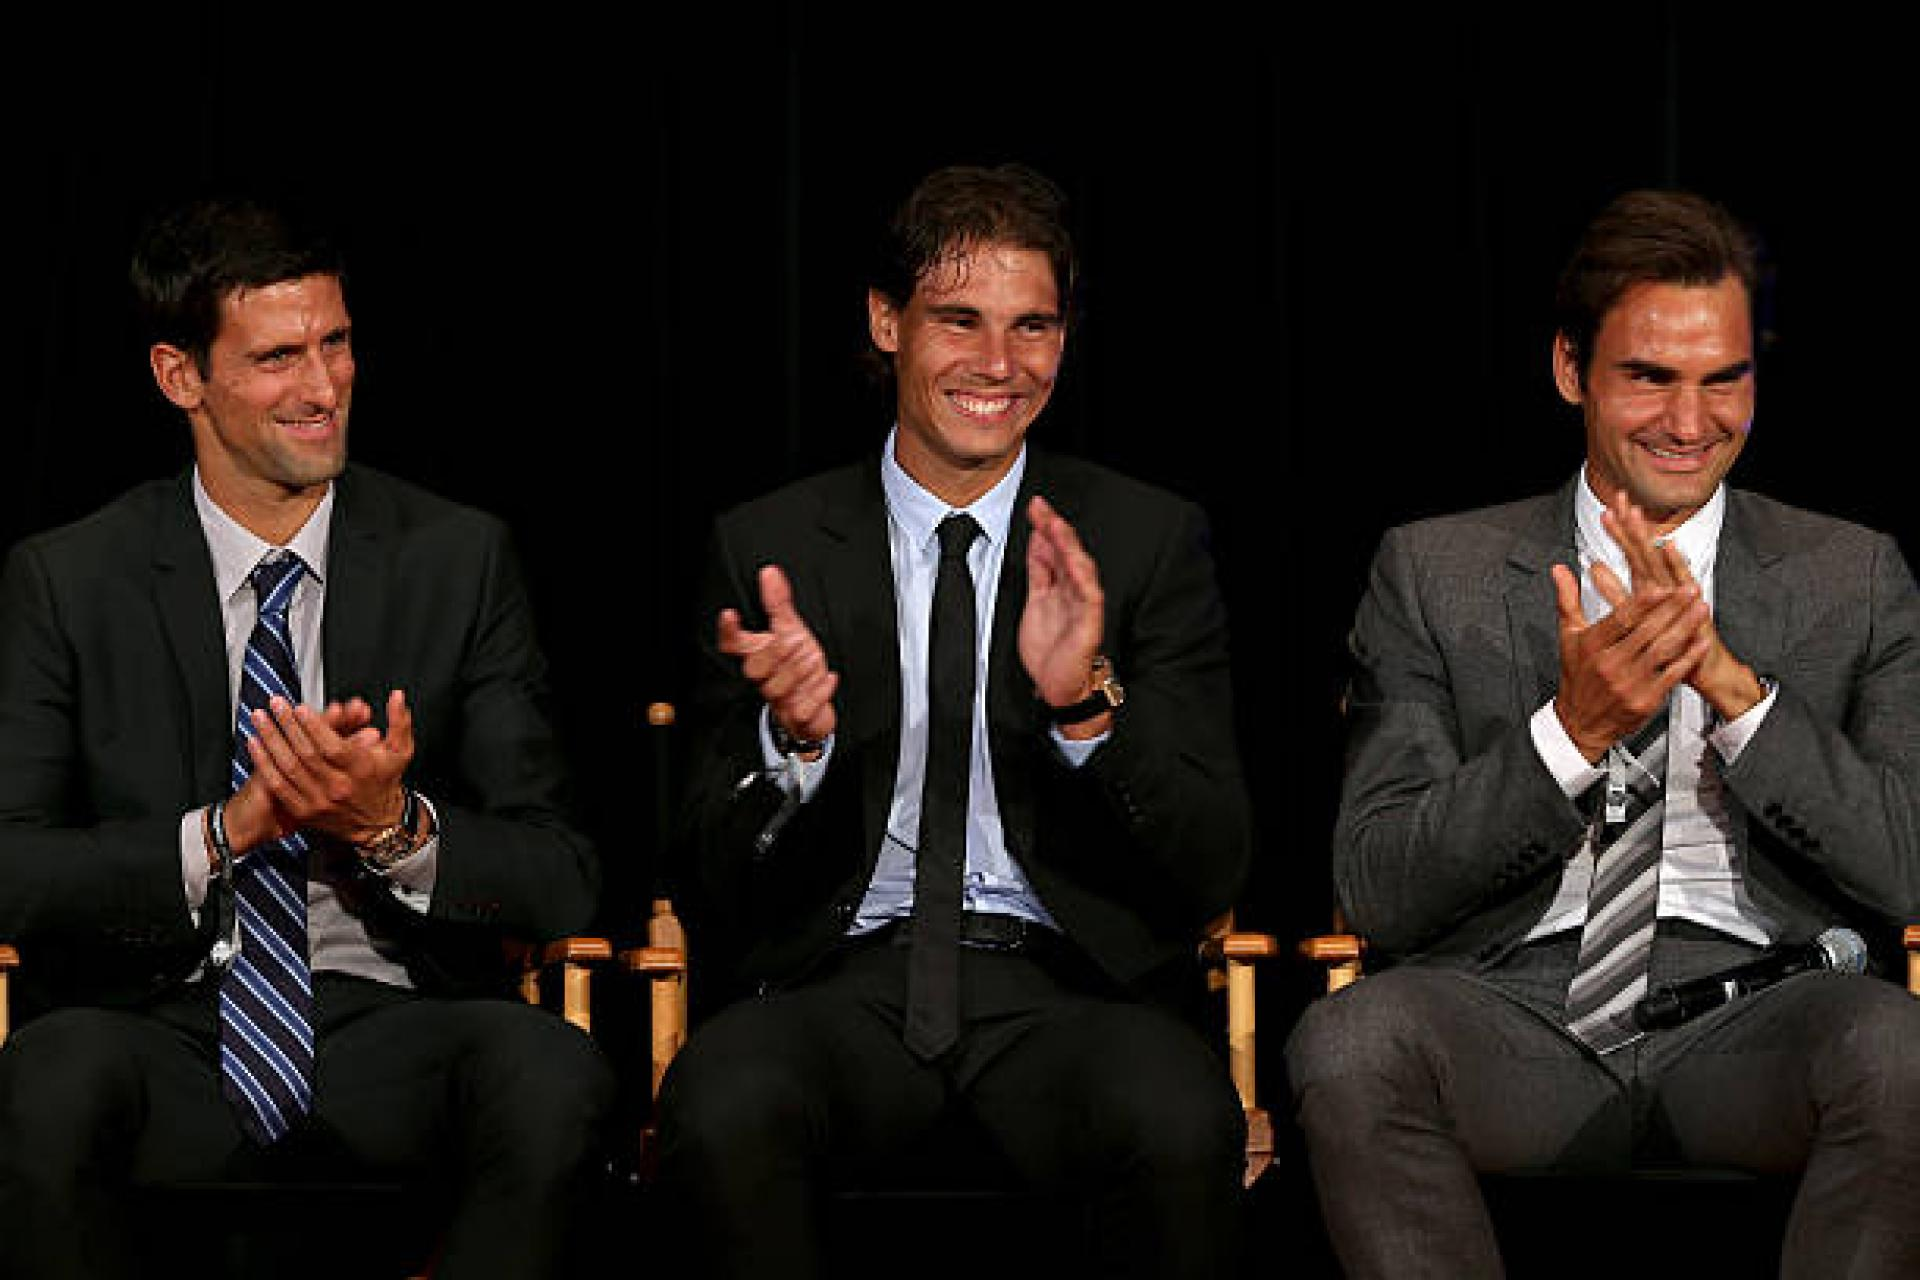 Sharing era with Roger Federer, Rafael Nadal and Djokovic is special -Garin